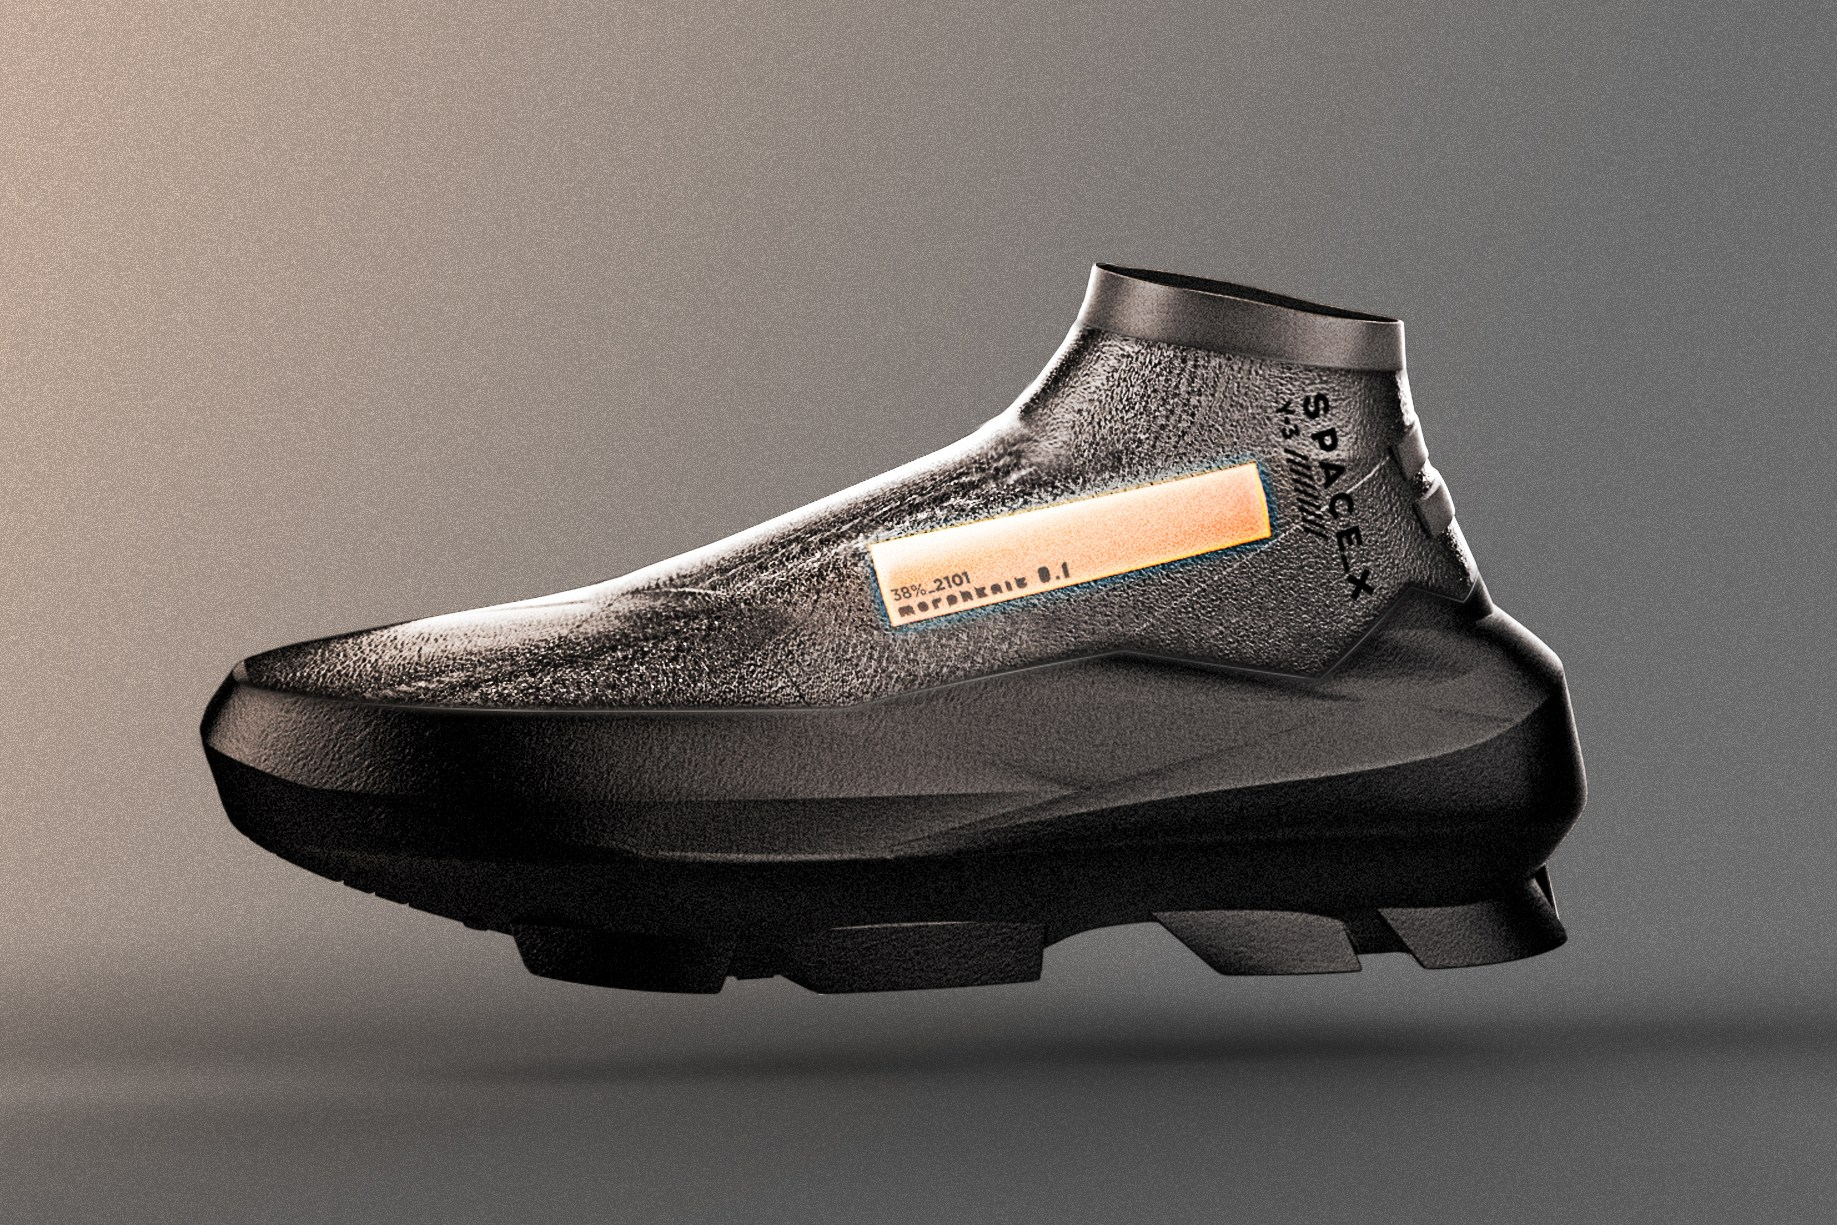 y-3-spacex-concept-sneaker-1